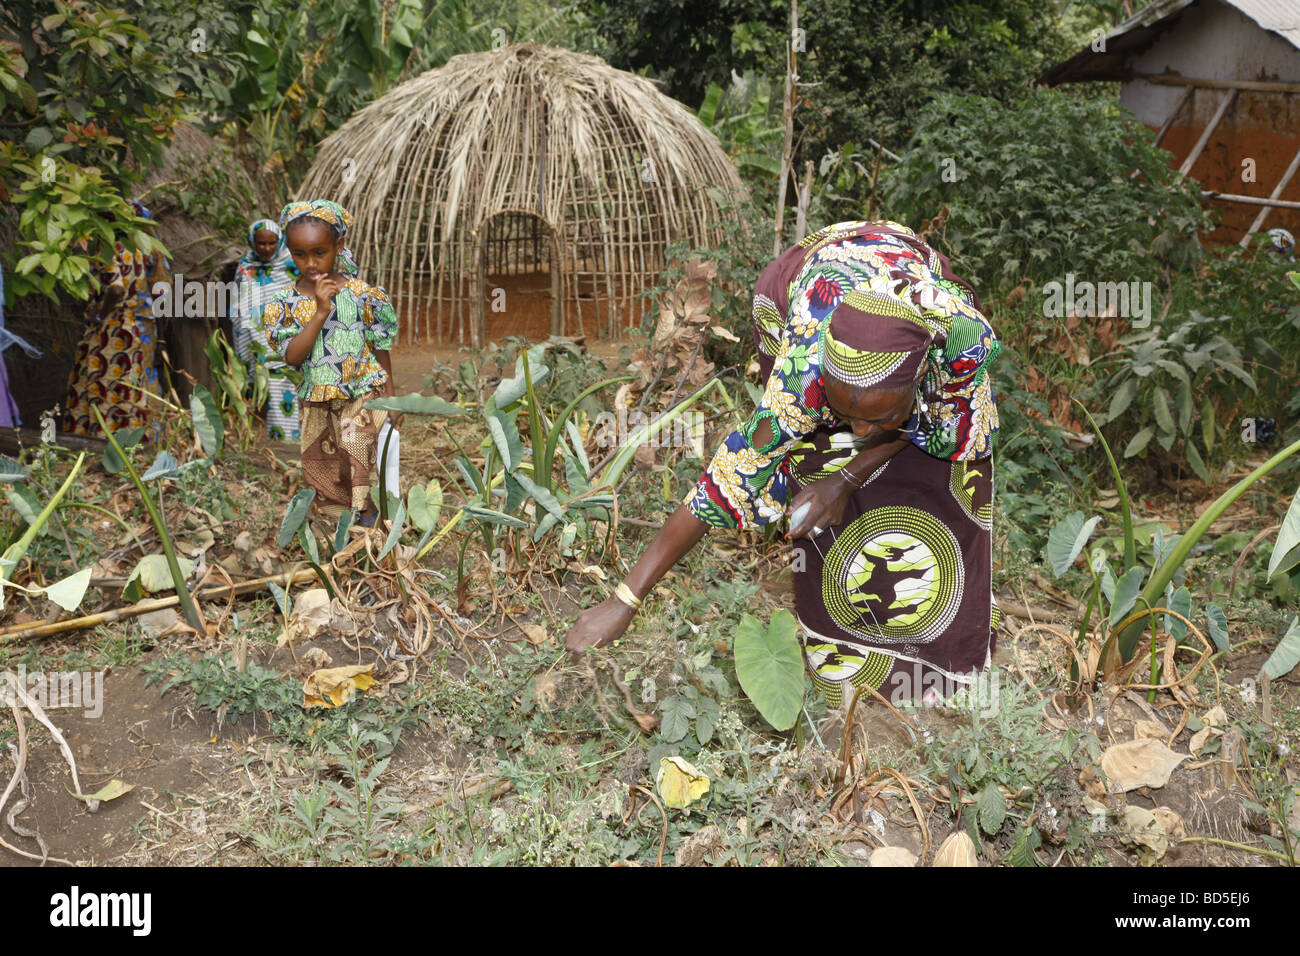 Woman and child working in the garden in front of the round hut, Mbororo ethnic group, Bamenda, Cameroon, Africa - Stock Image